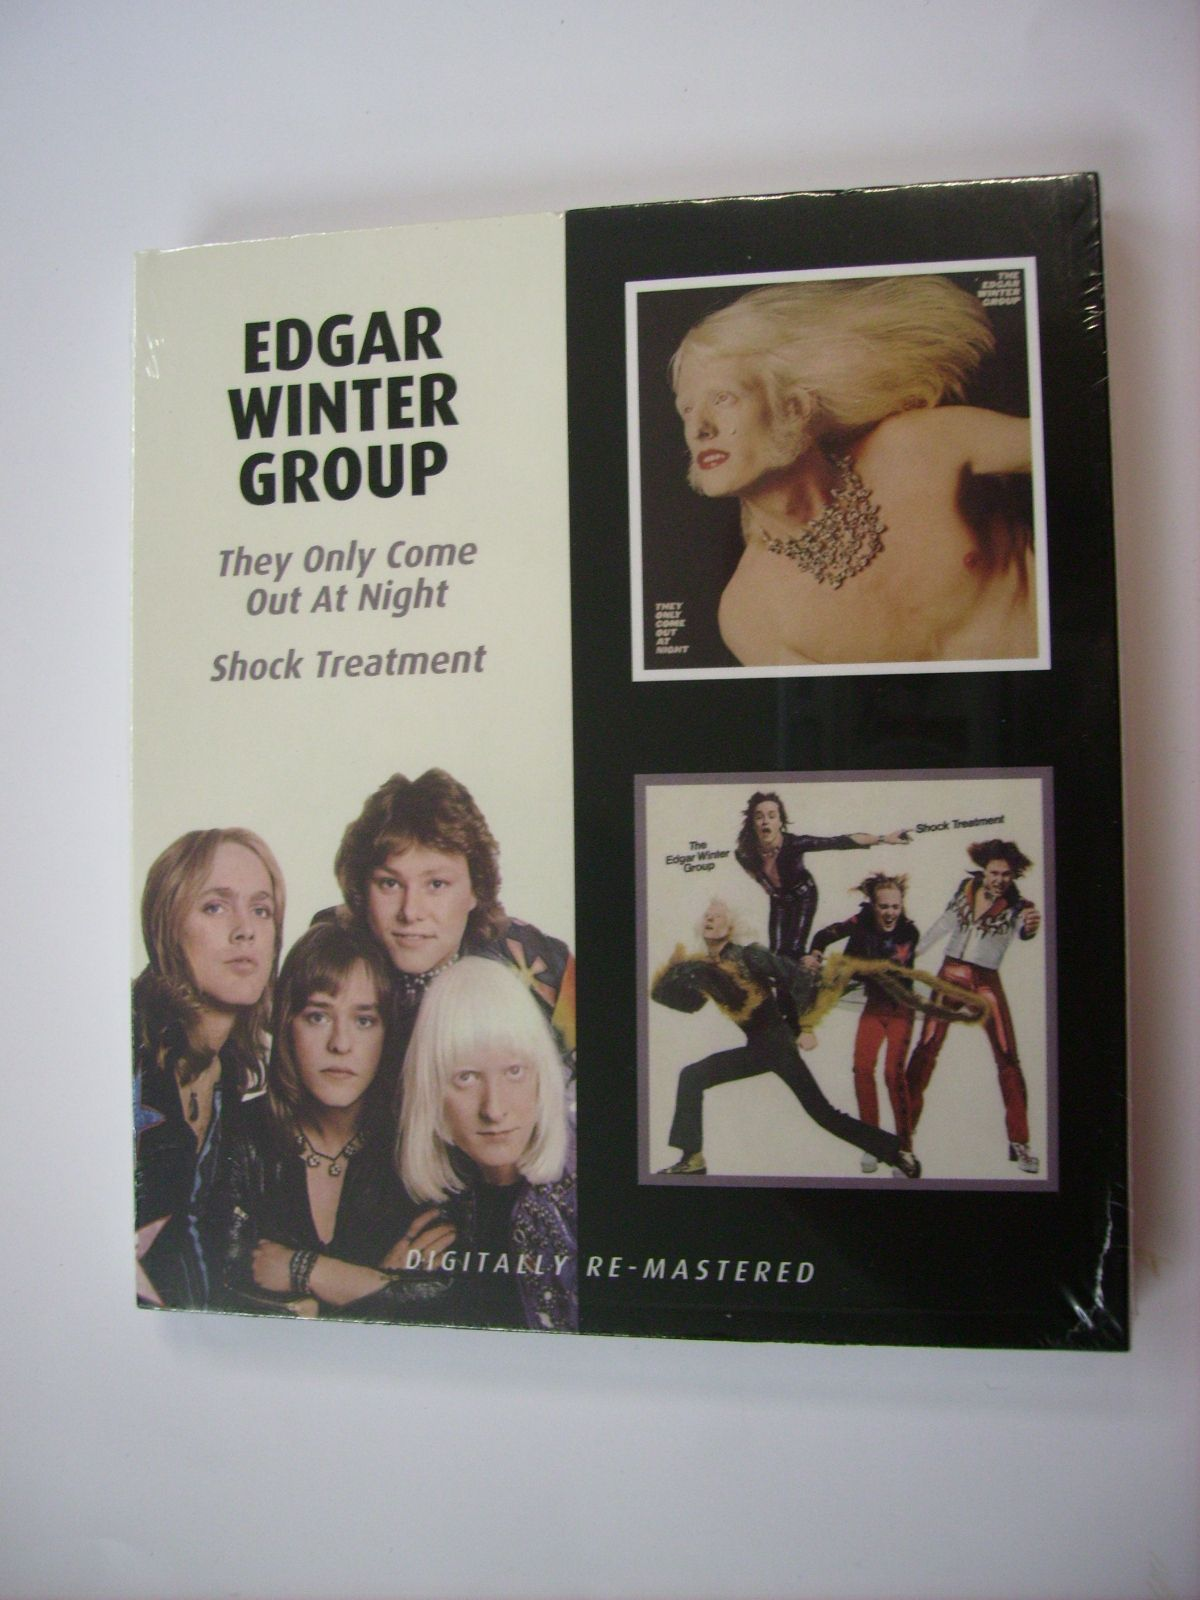 Edgar Winter Group They Only Come Out At Night Records